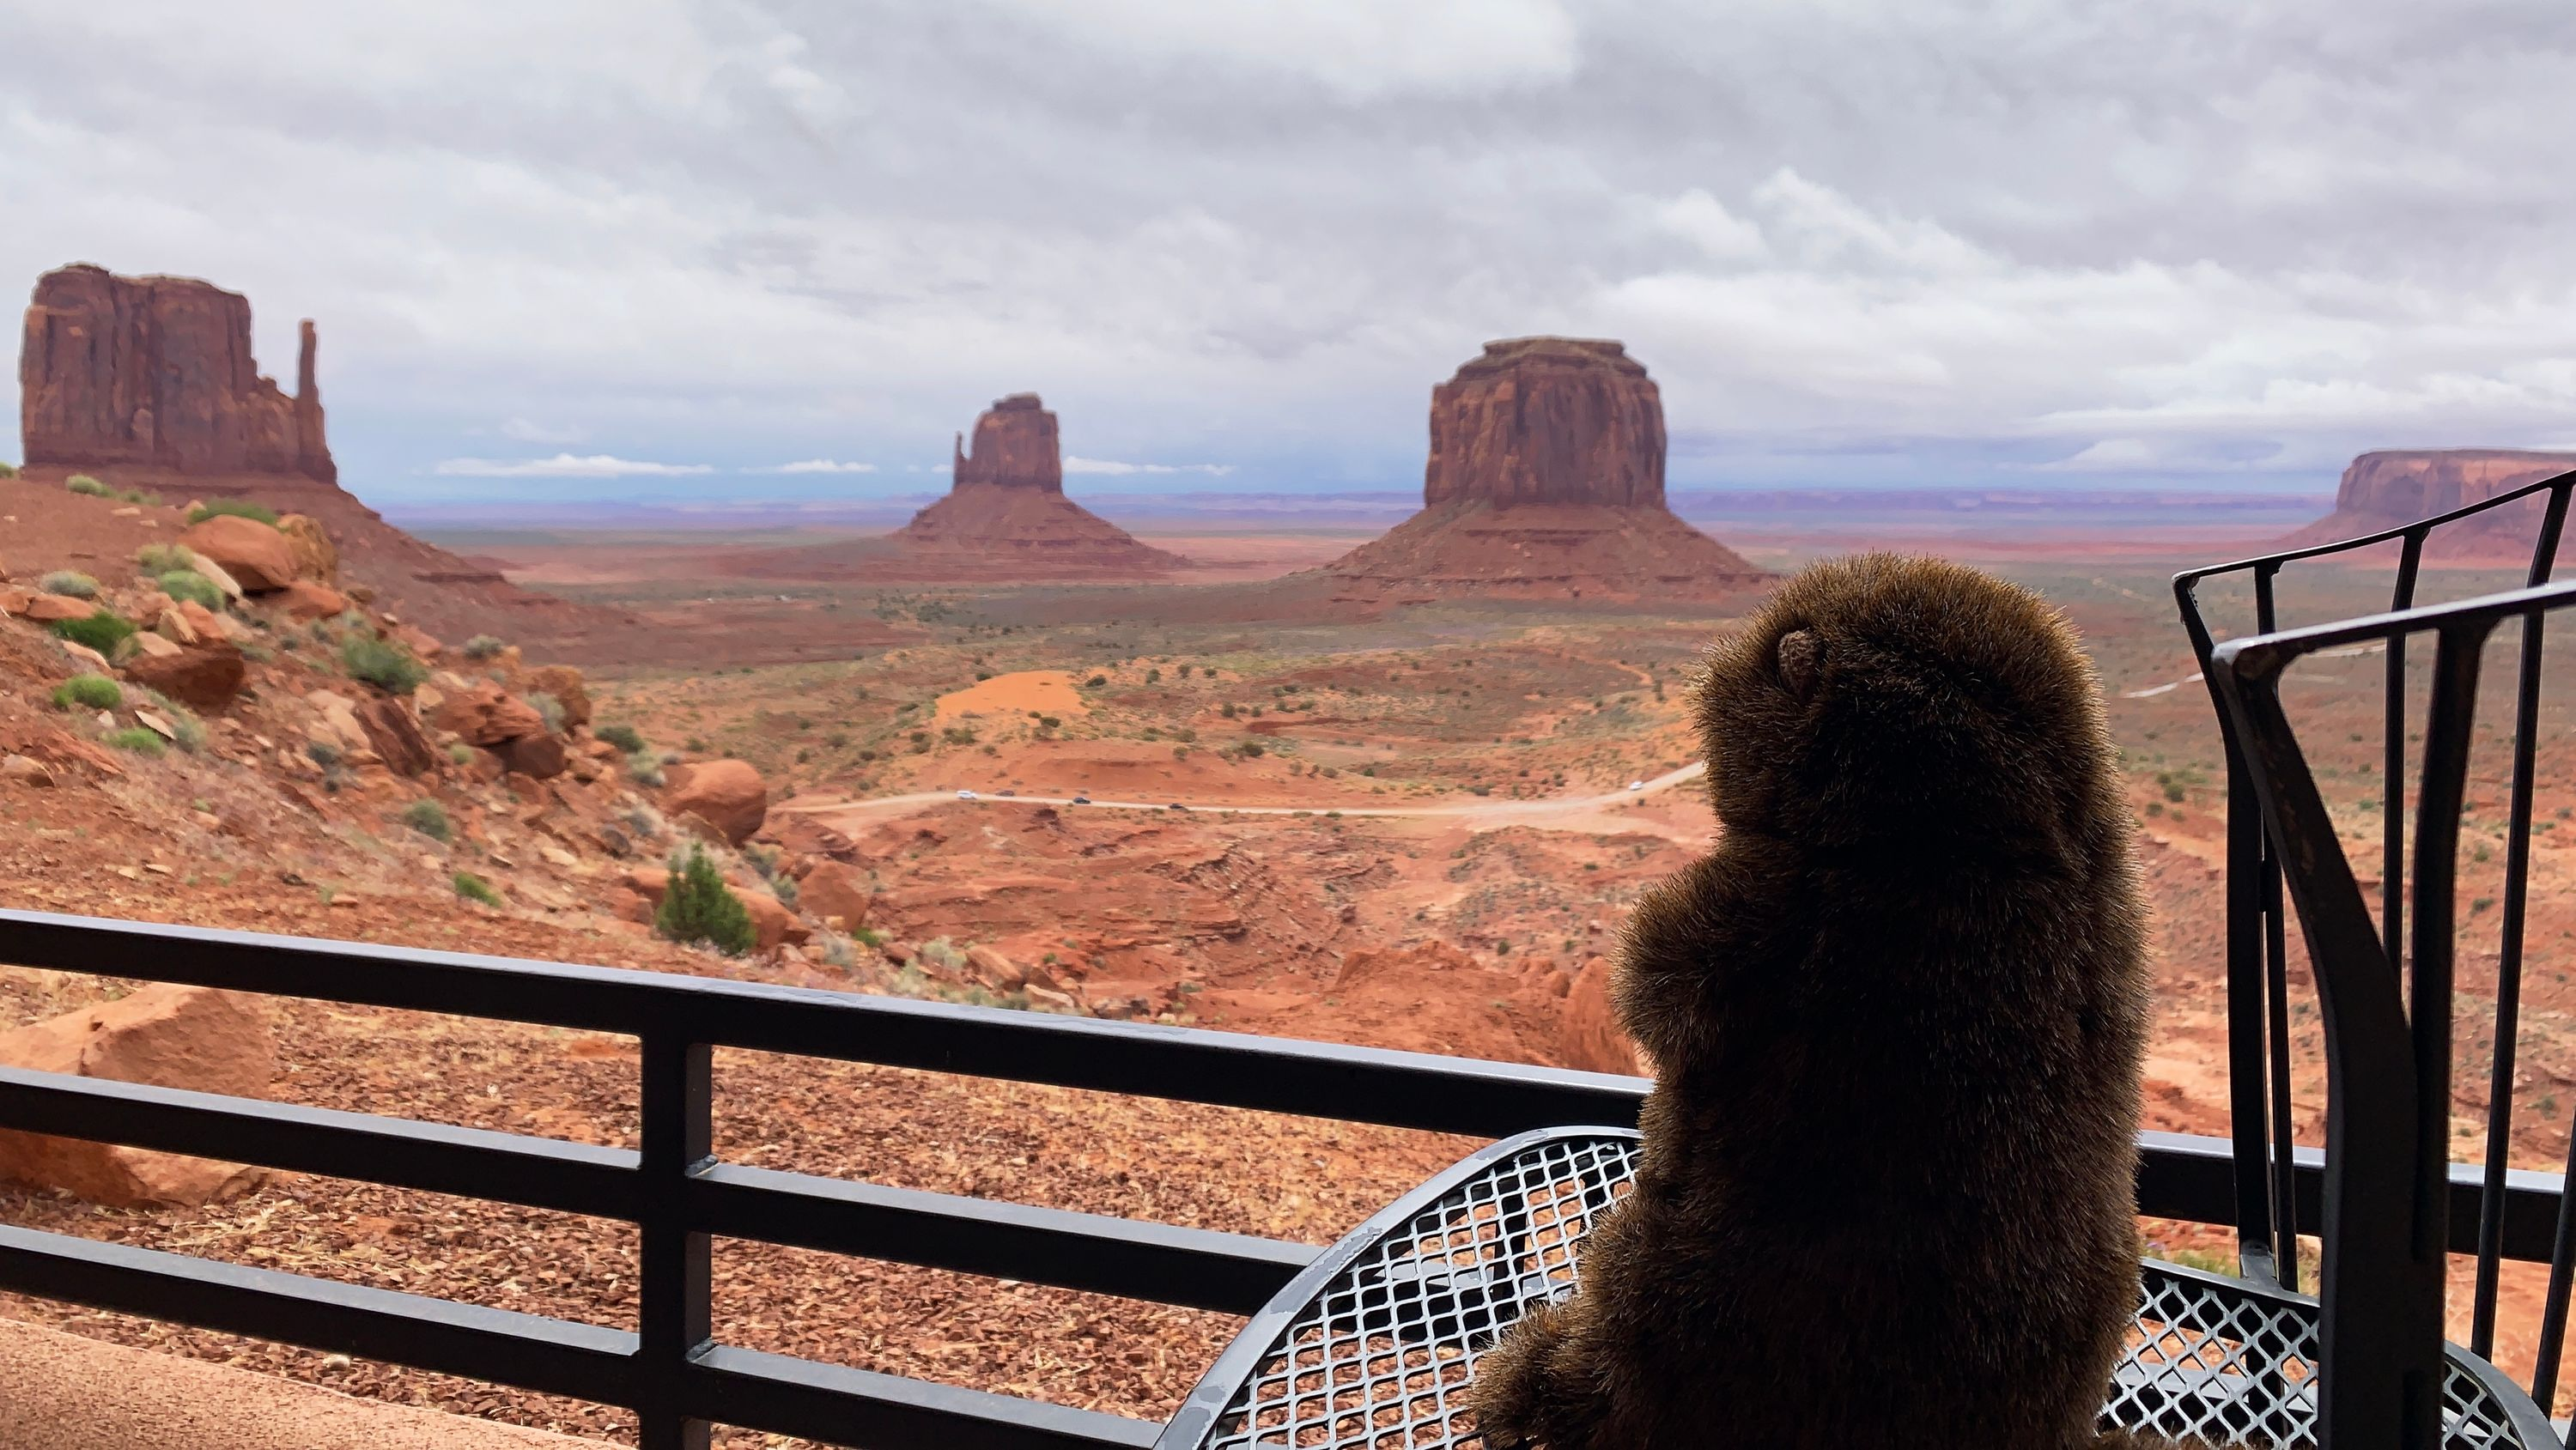 The Groundhog sits on his balcony at The View Hotel at Monument Valley and wonders how the hotel was named.